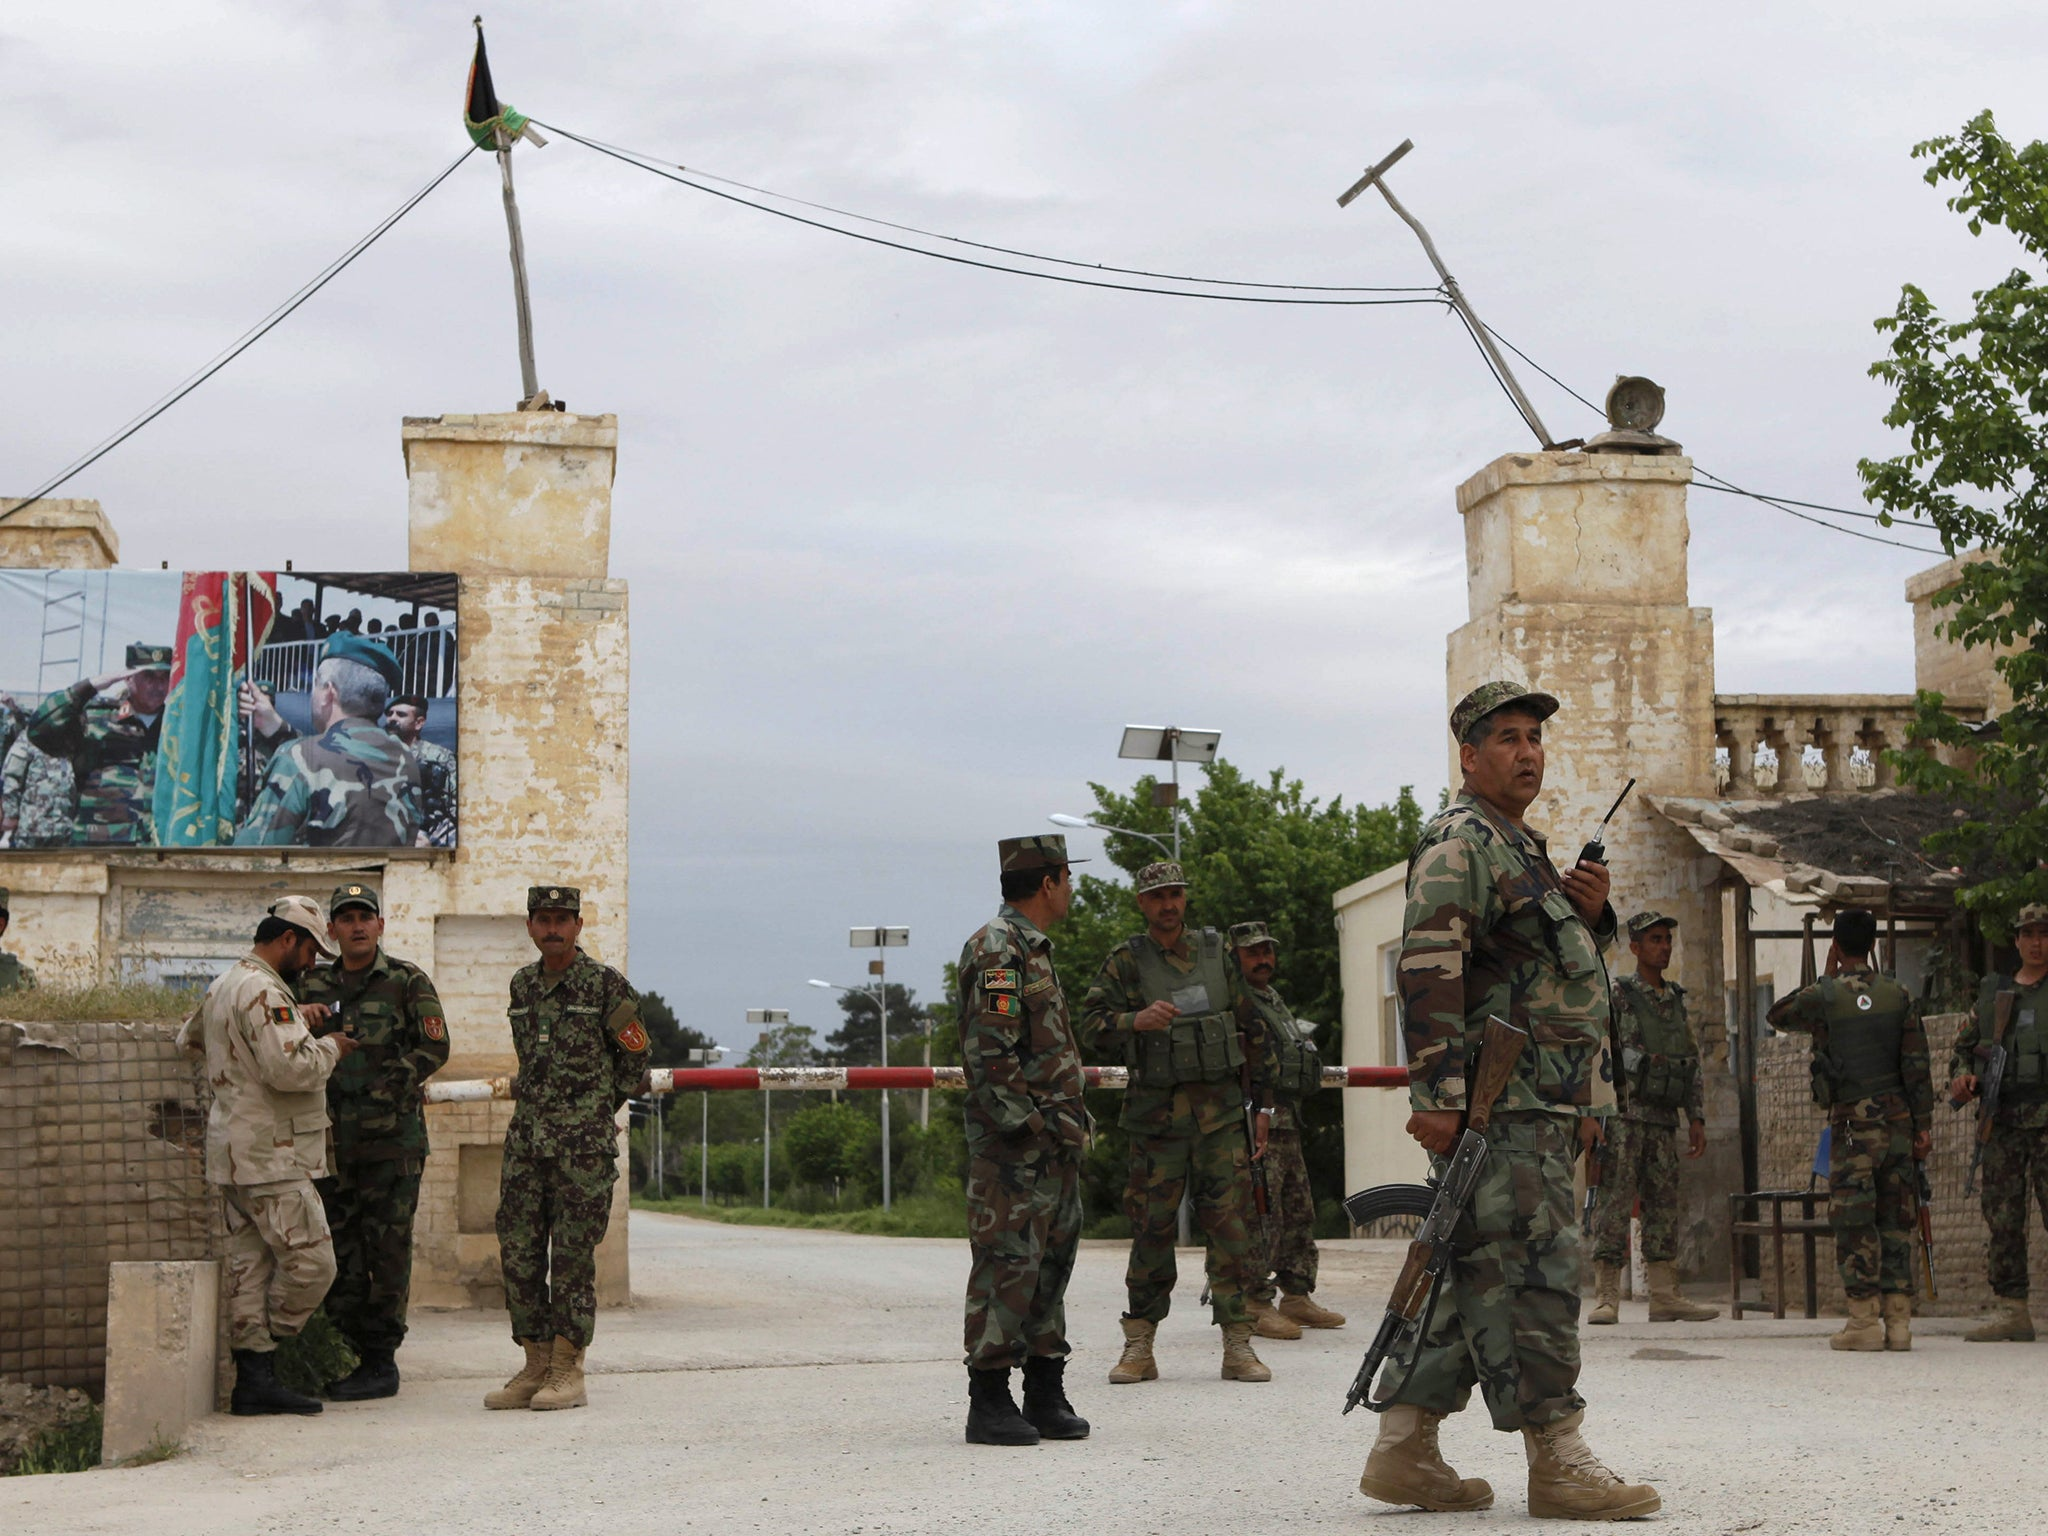 'more Than 50' Feared Dead In Taliban Attack On Afghan Military Base